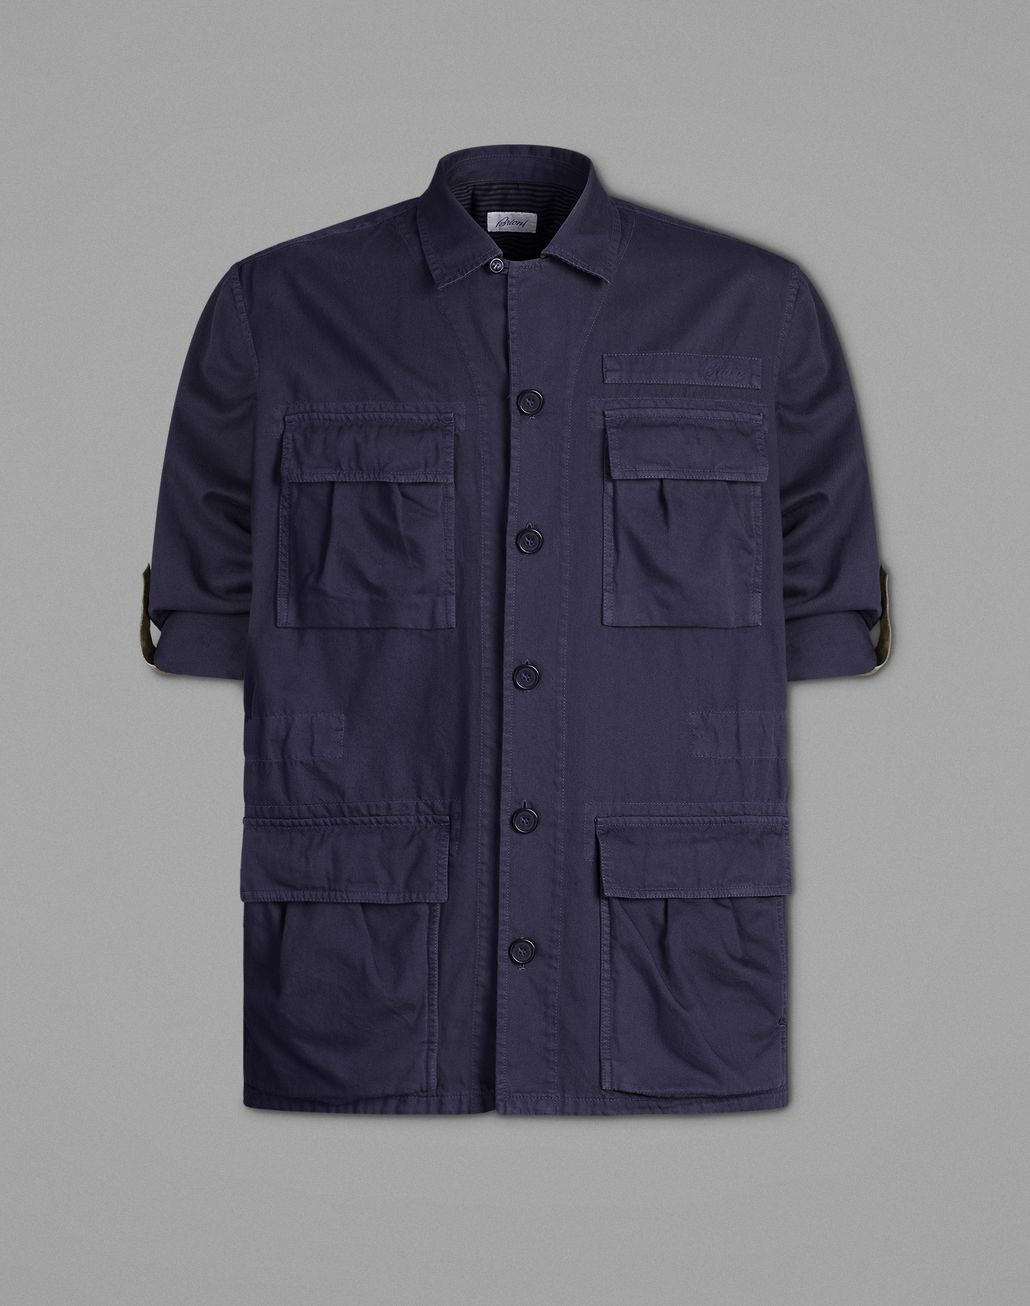 BRIONI Navy Blue Safari Jacket Coats & Raincoats Man f